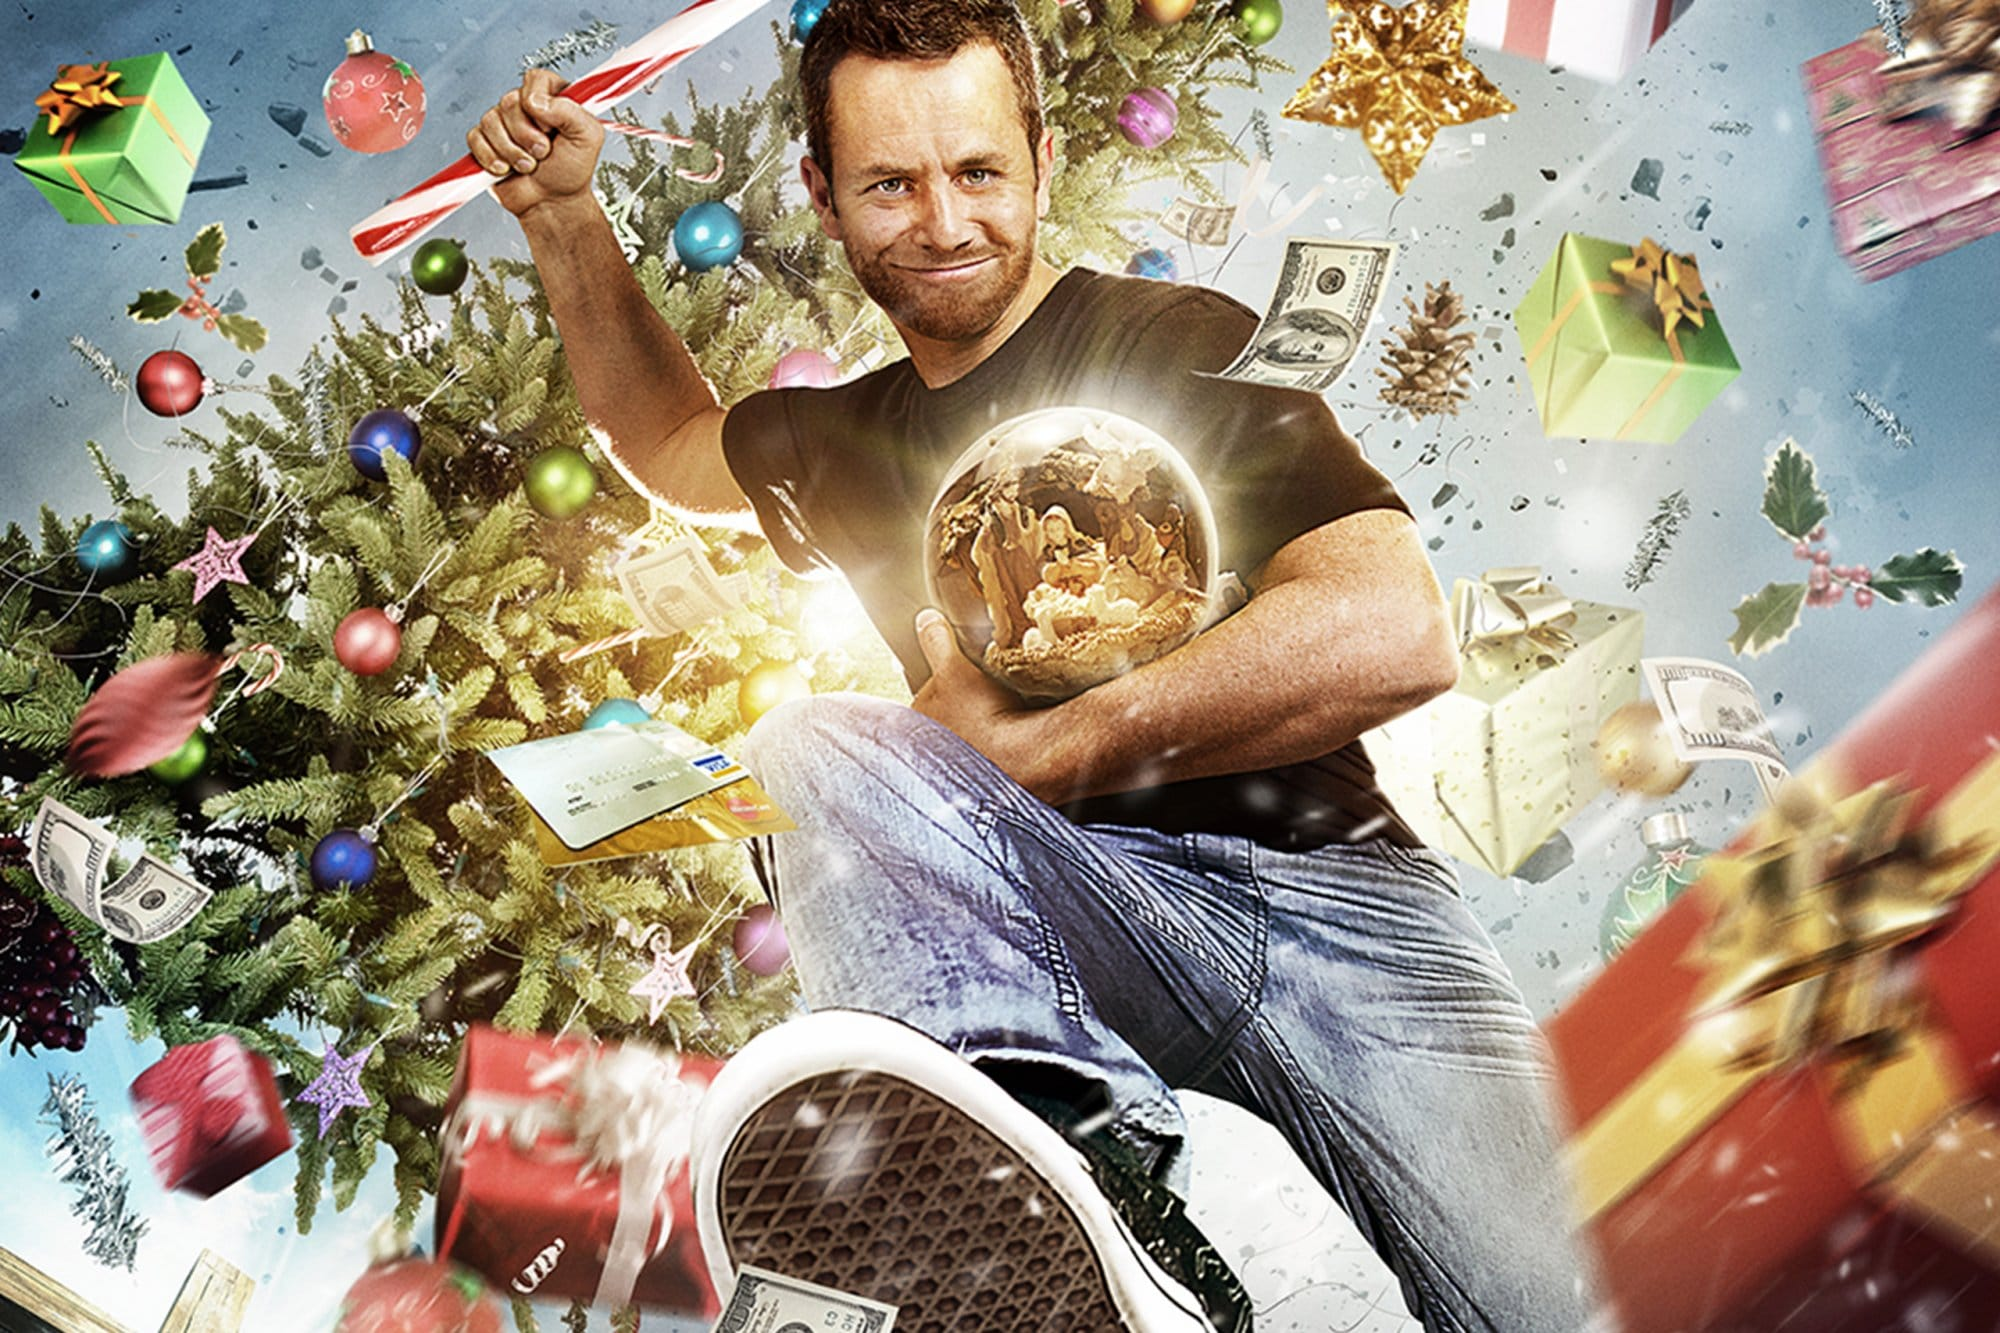 Saving Christmas - Top 10 dos piores filmes do IMDB